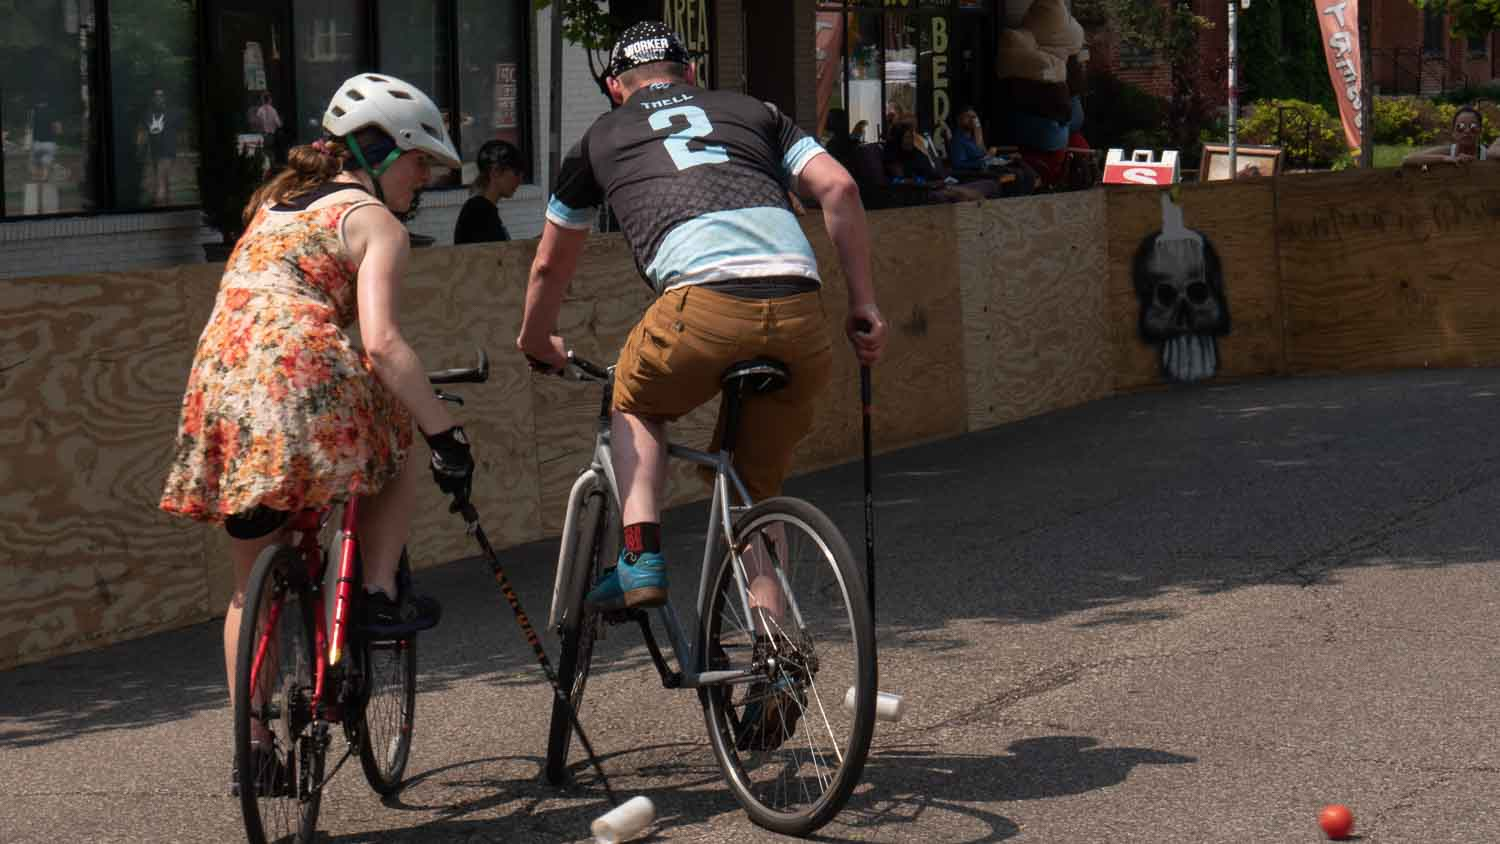 Bike Polo players tries to score Minneapolis